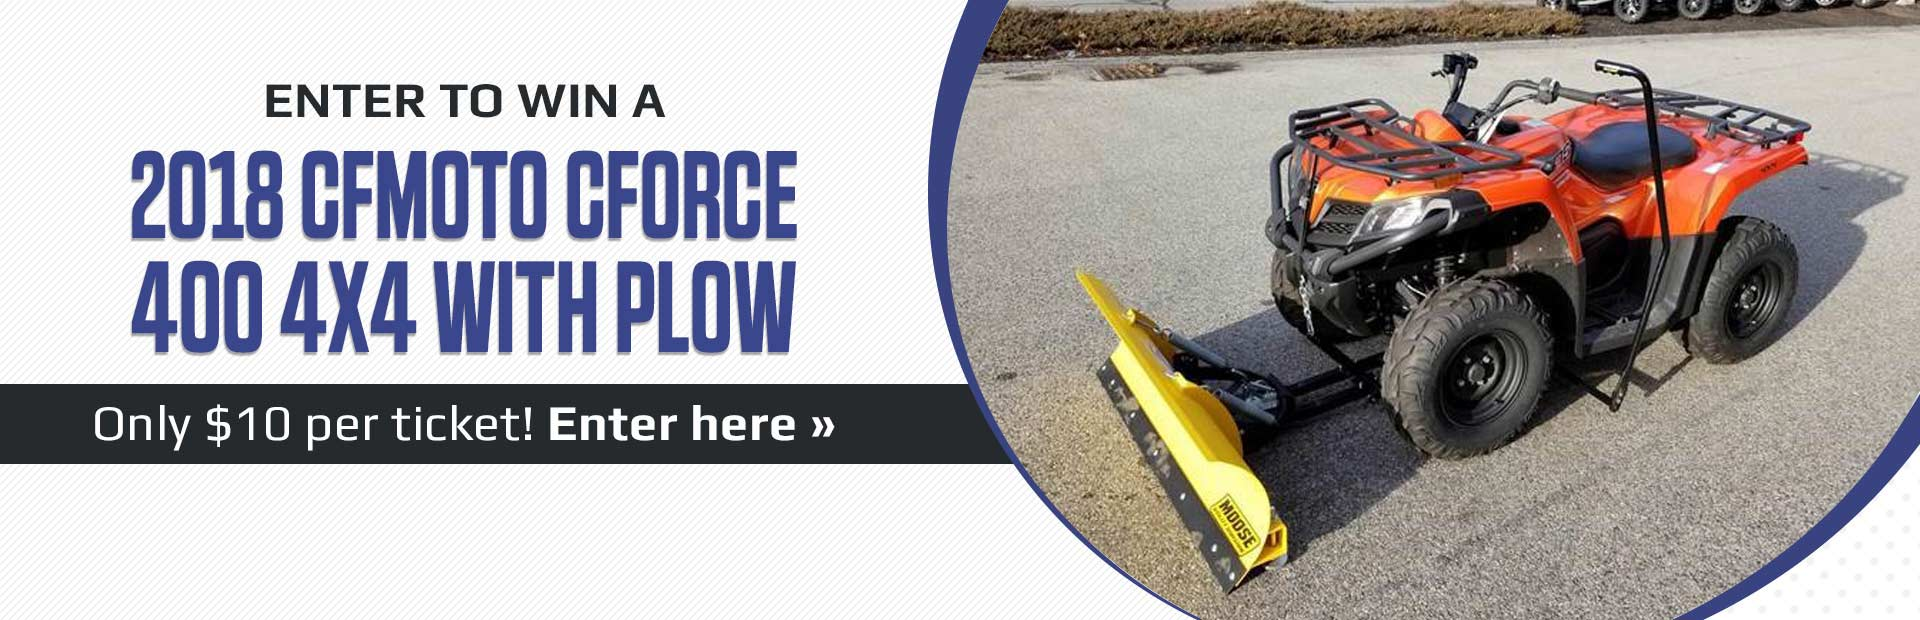 Enter to win a 2018 CFMOTO CFORCE 400 4x4 with a plow!